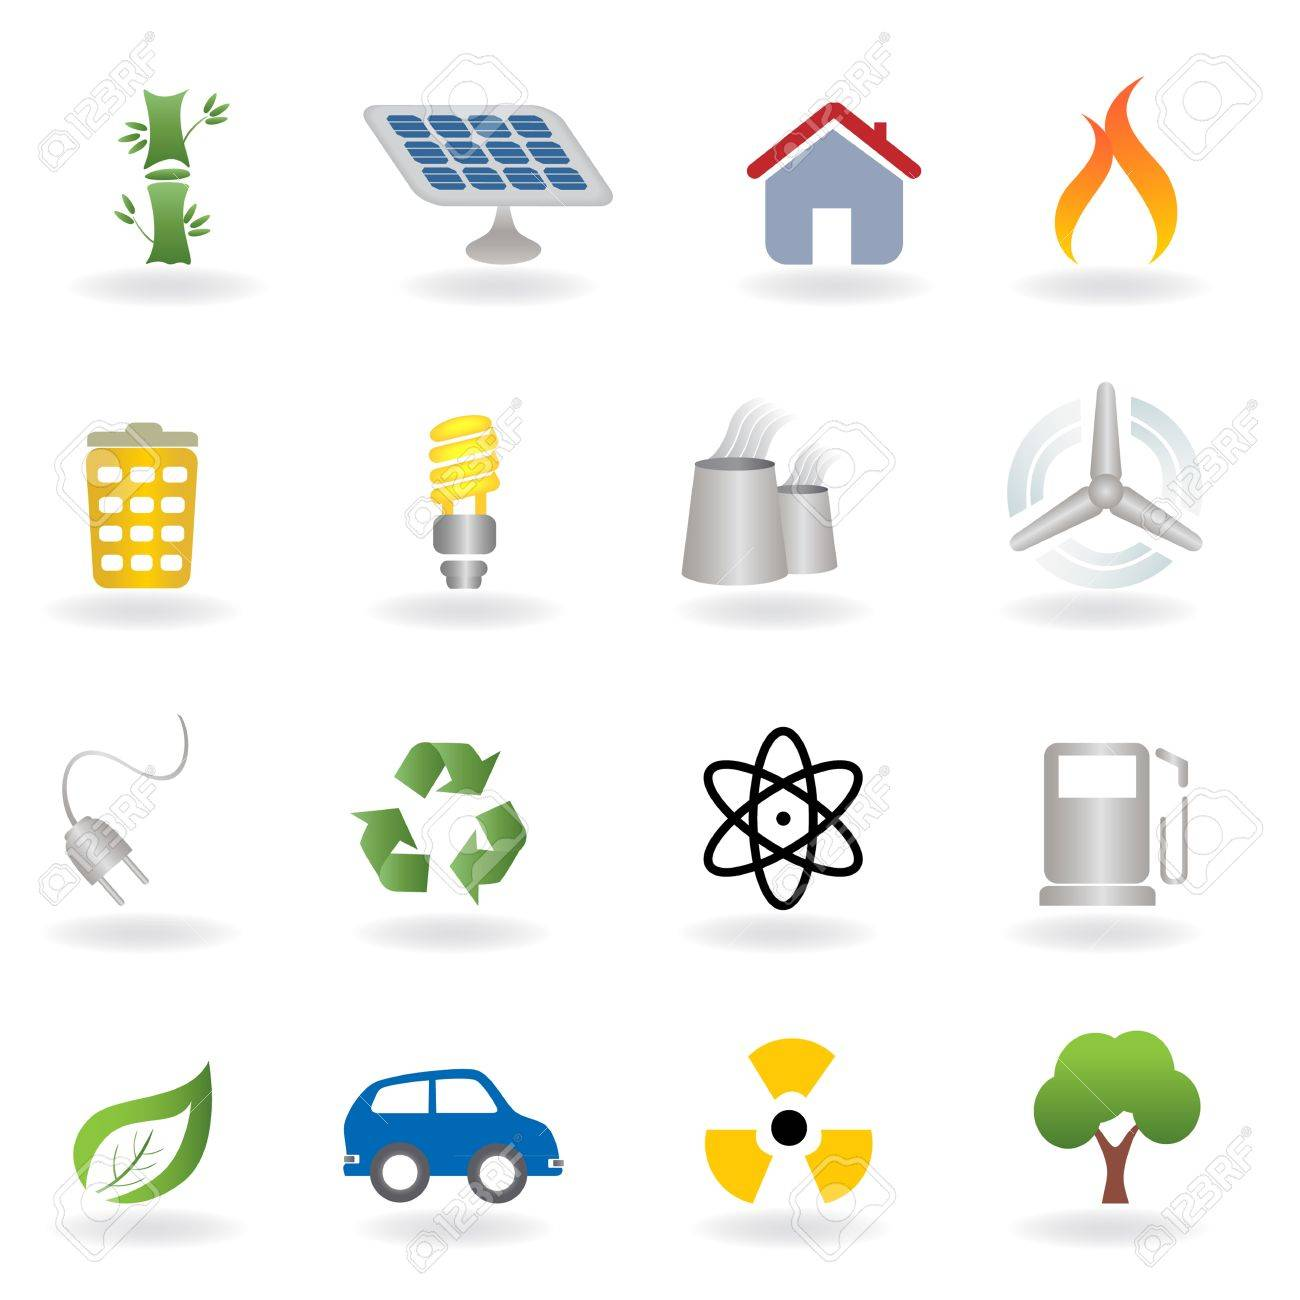 Eco and environment related icon set Stock Vector - 12305438